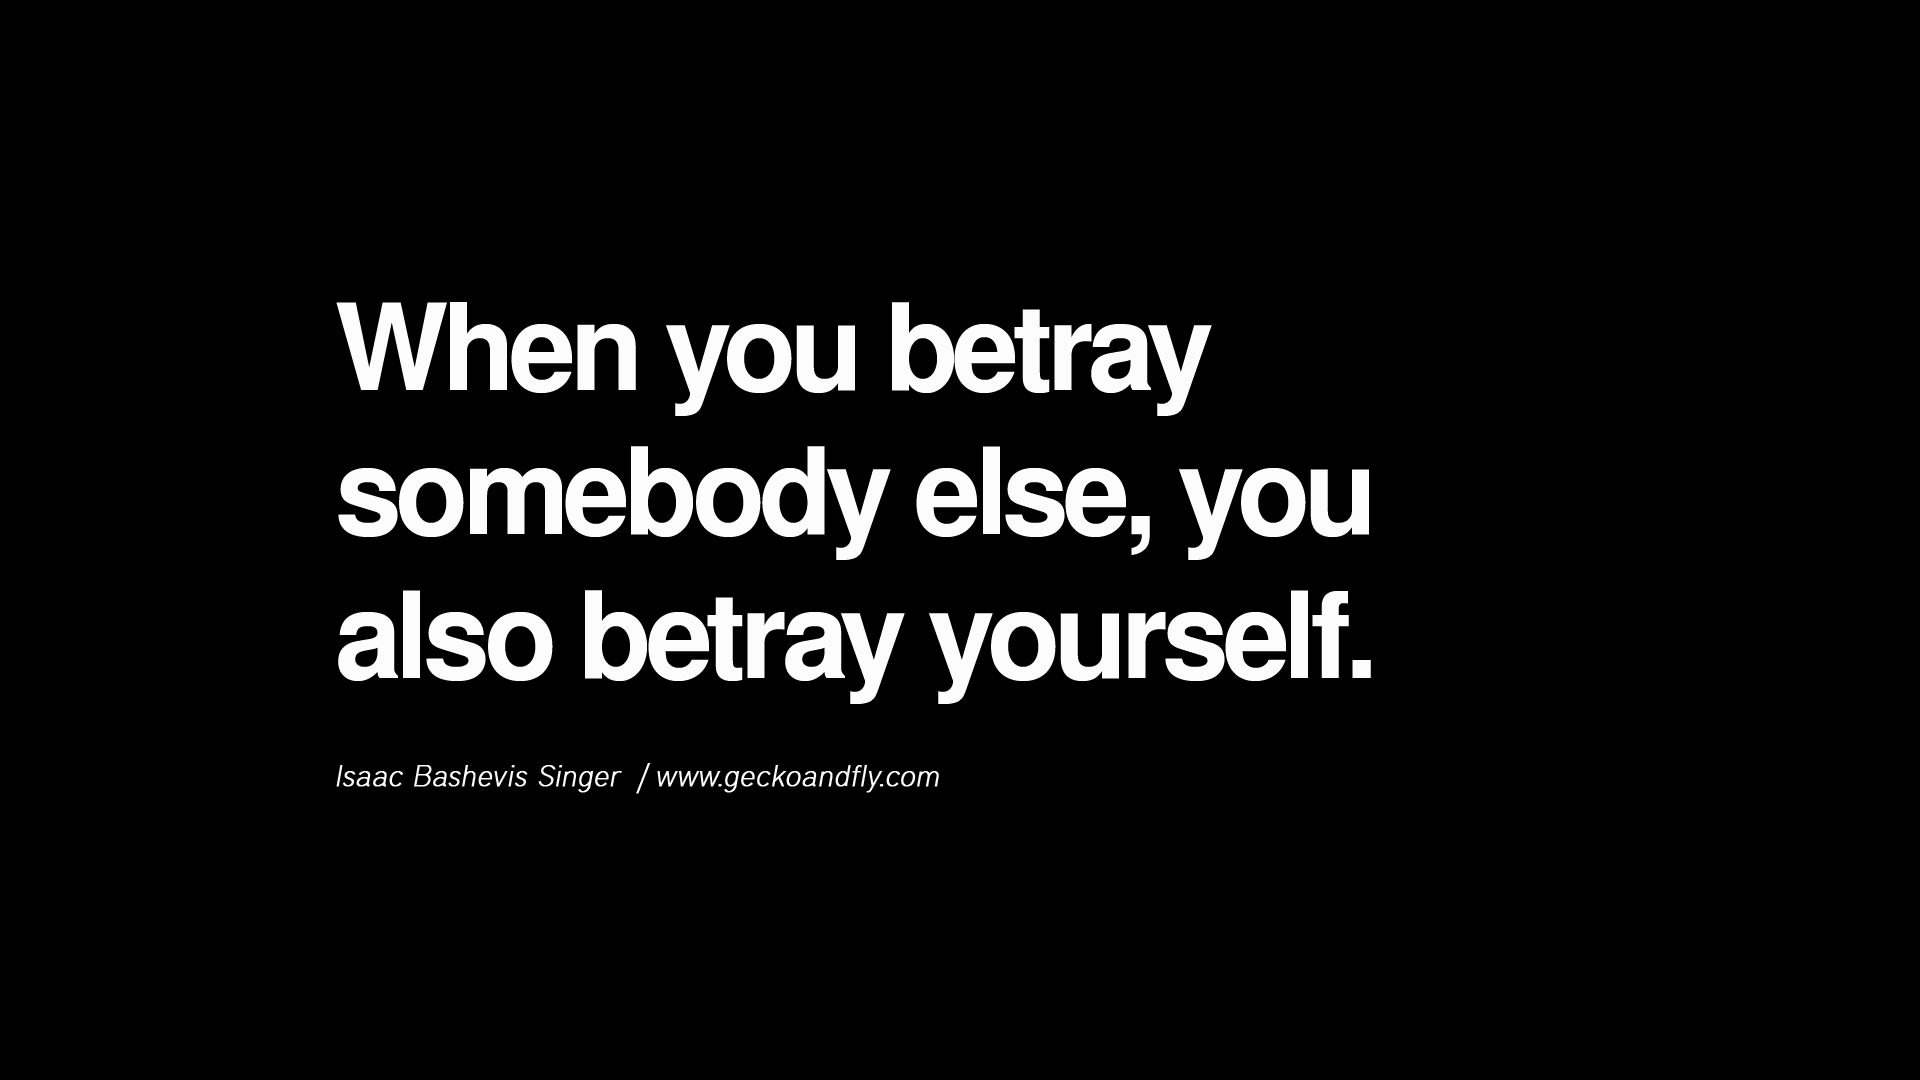 Fathers Betrayal Quotes And Sayings Quotesgram: Betrayal Friendship Quotes. QuotesGram